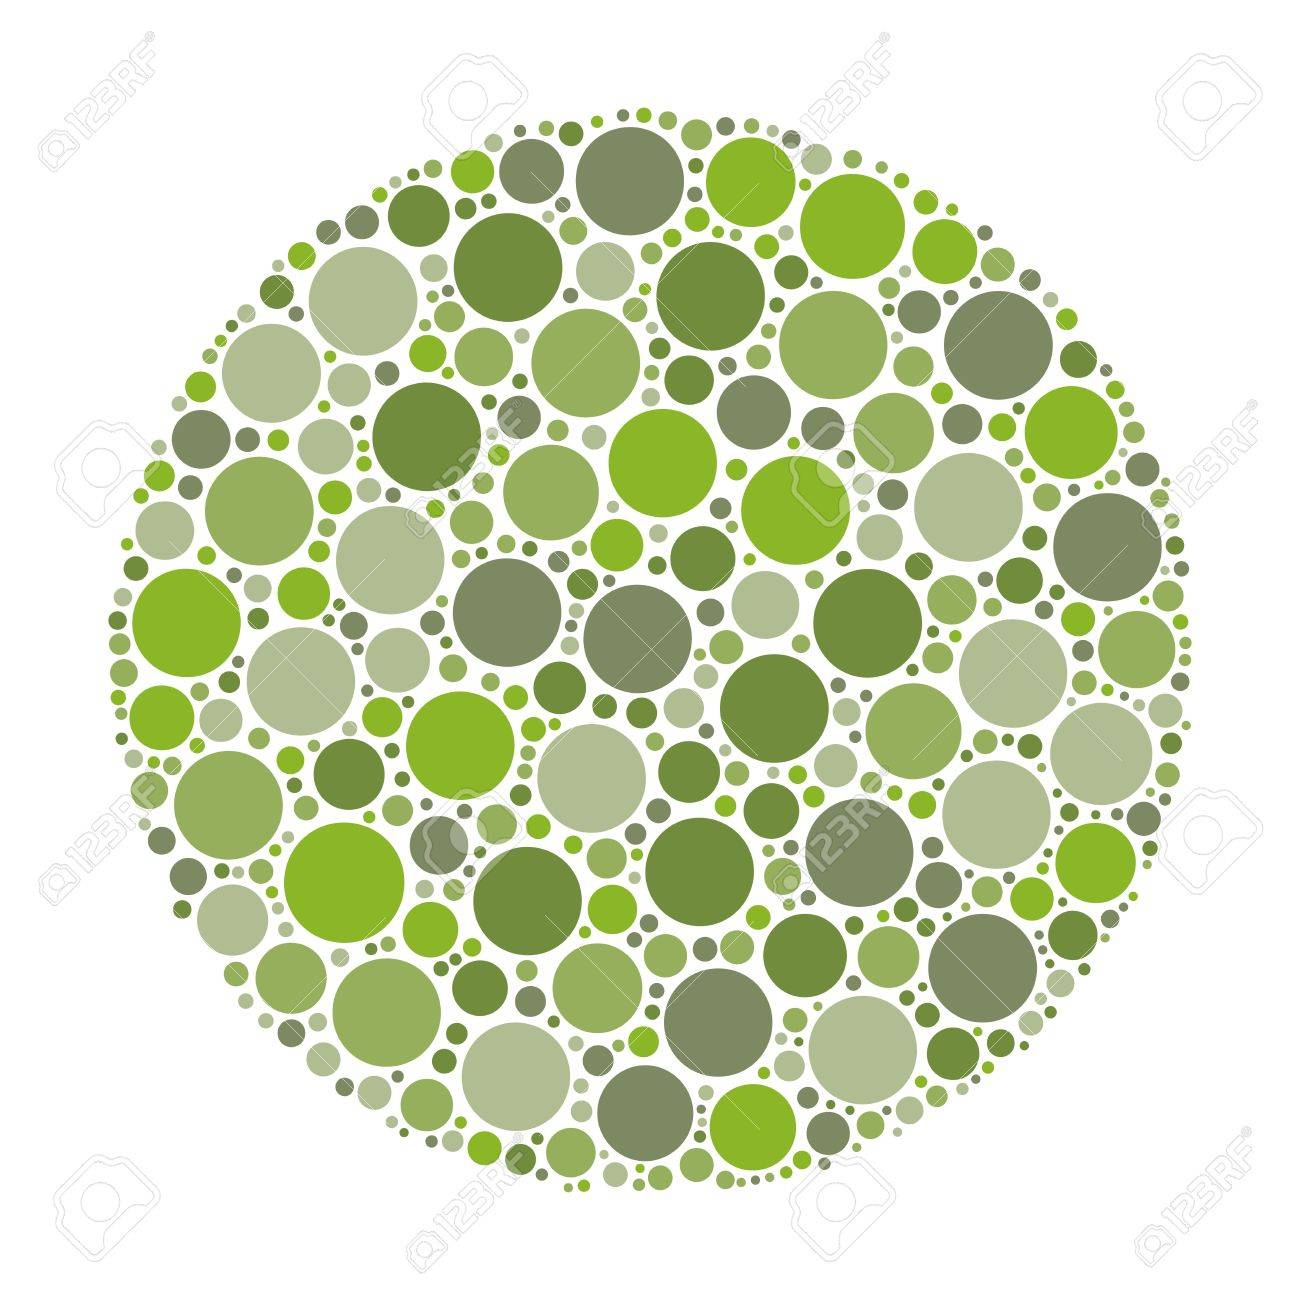 Circle Made Of Dots In Shades Of Green. Abstract Vector Illustration ...